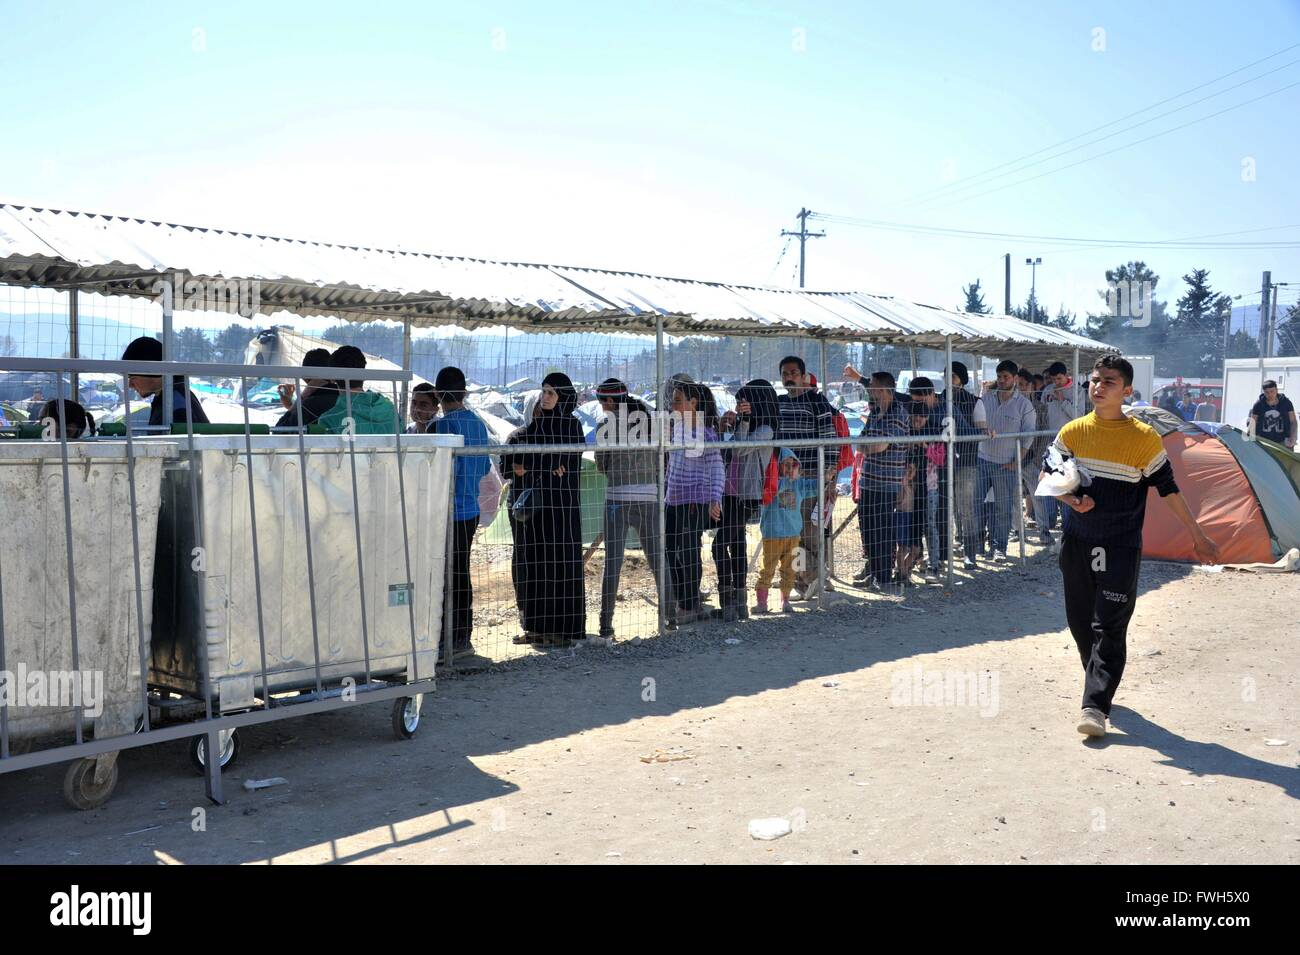 Two hours or more refugees are waiting in line to get food - 31 March 2016 - Stock Image